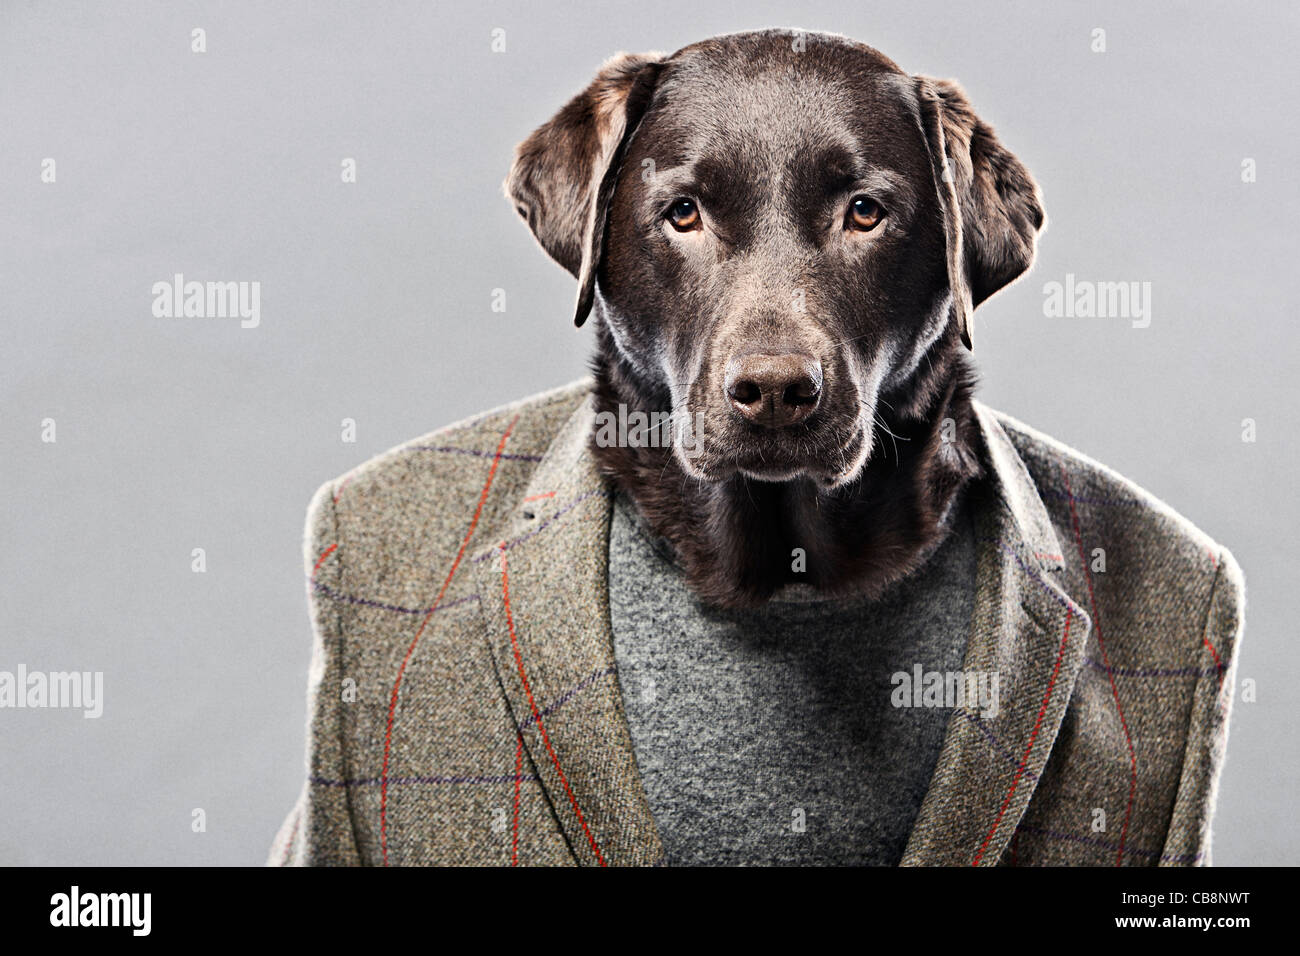 Chocolate Labrador in Hunting Jacket - Stock Image